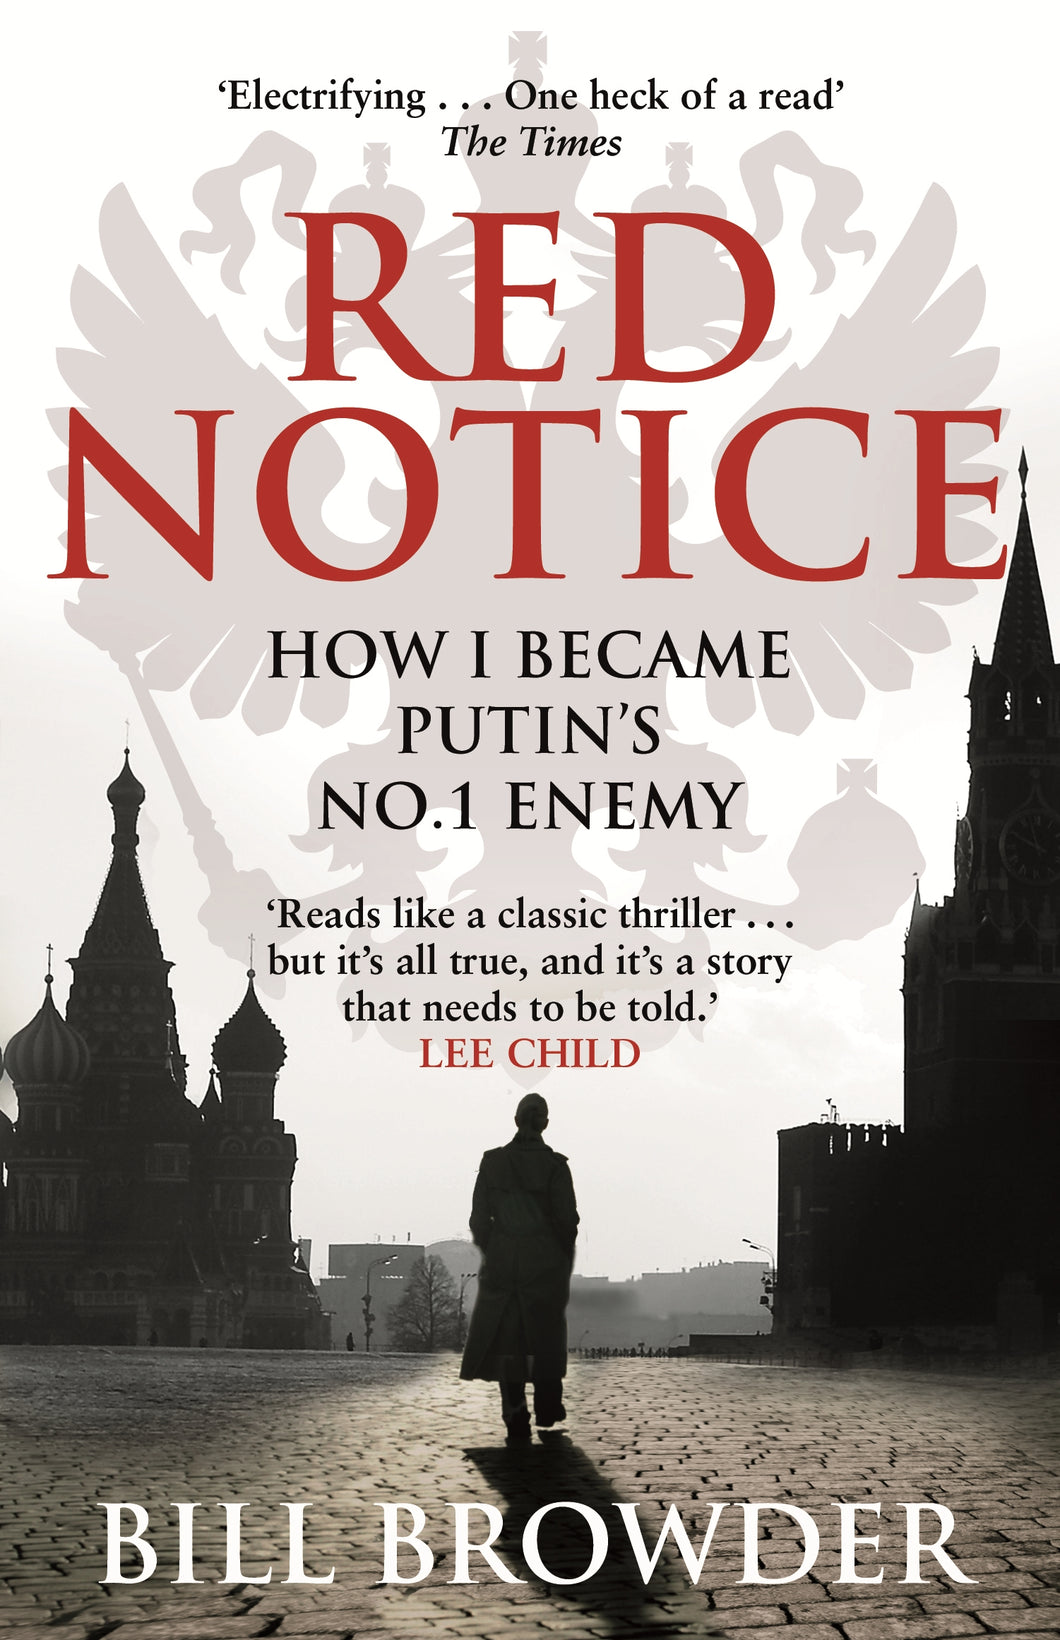 Red Notice-How I Became Putin's No. 1 Enemy